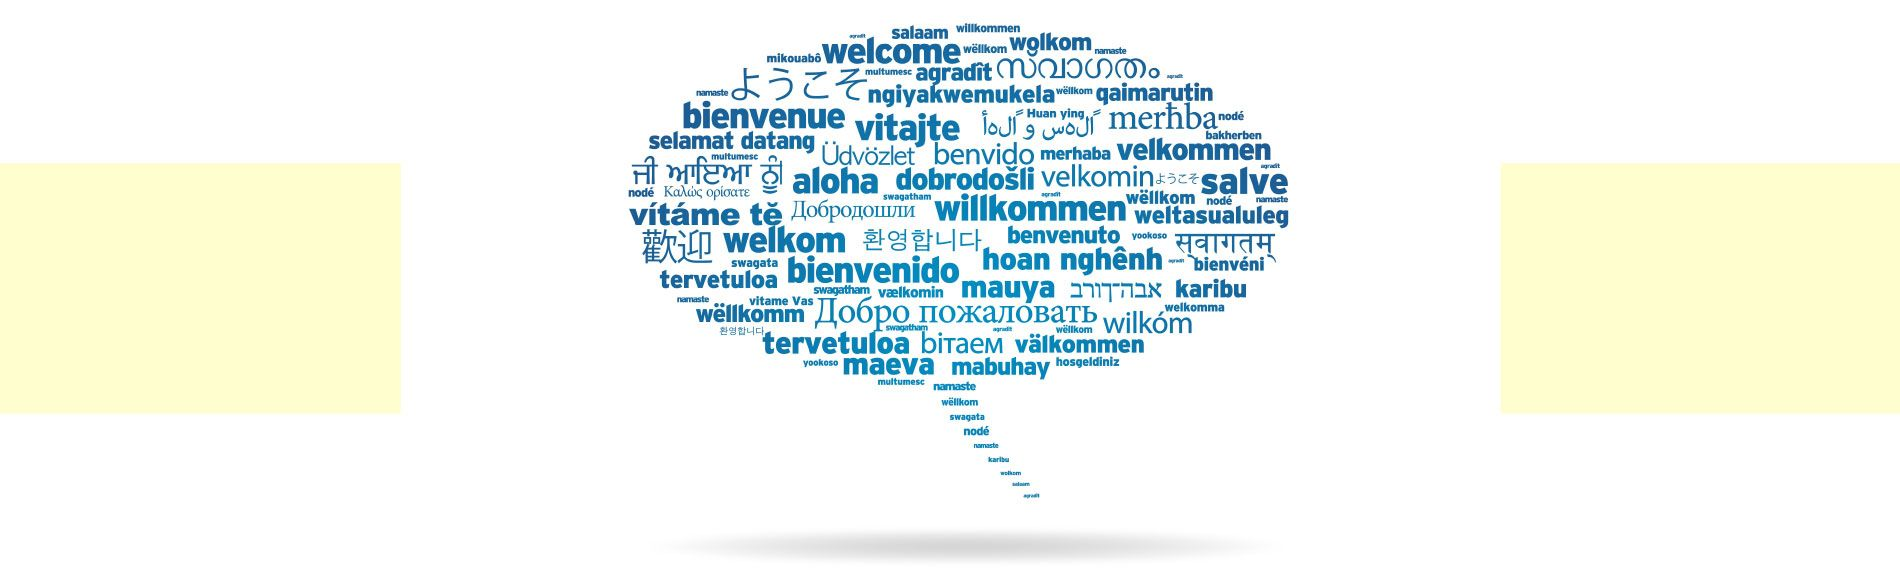 Welcome In Various Languages Inside a Speech Bubble